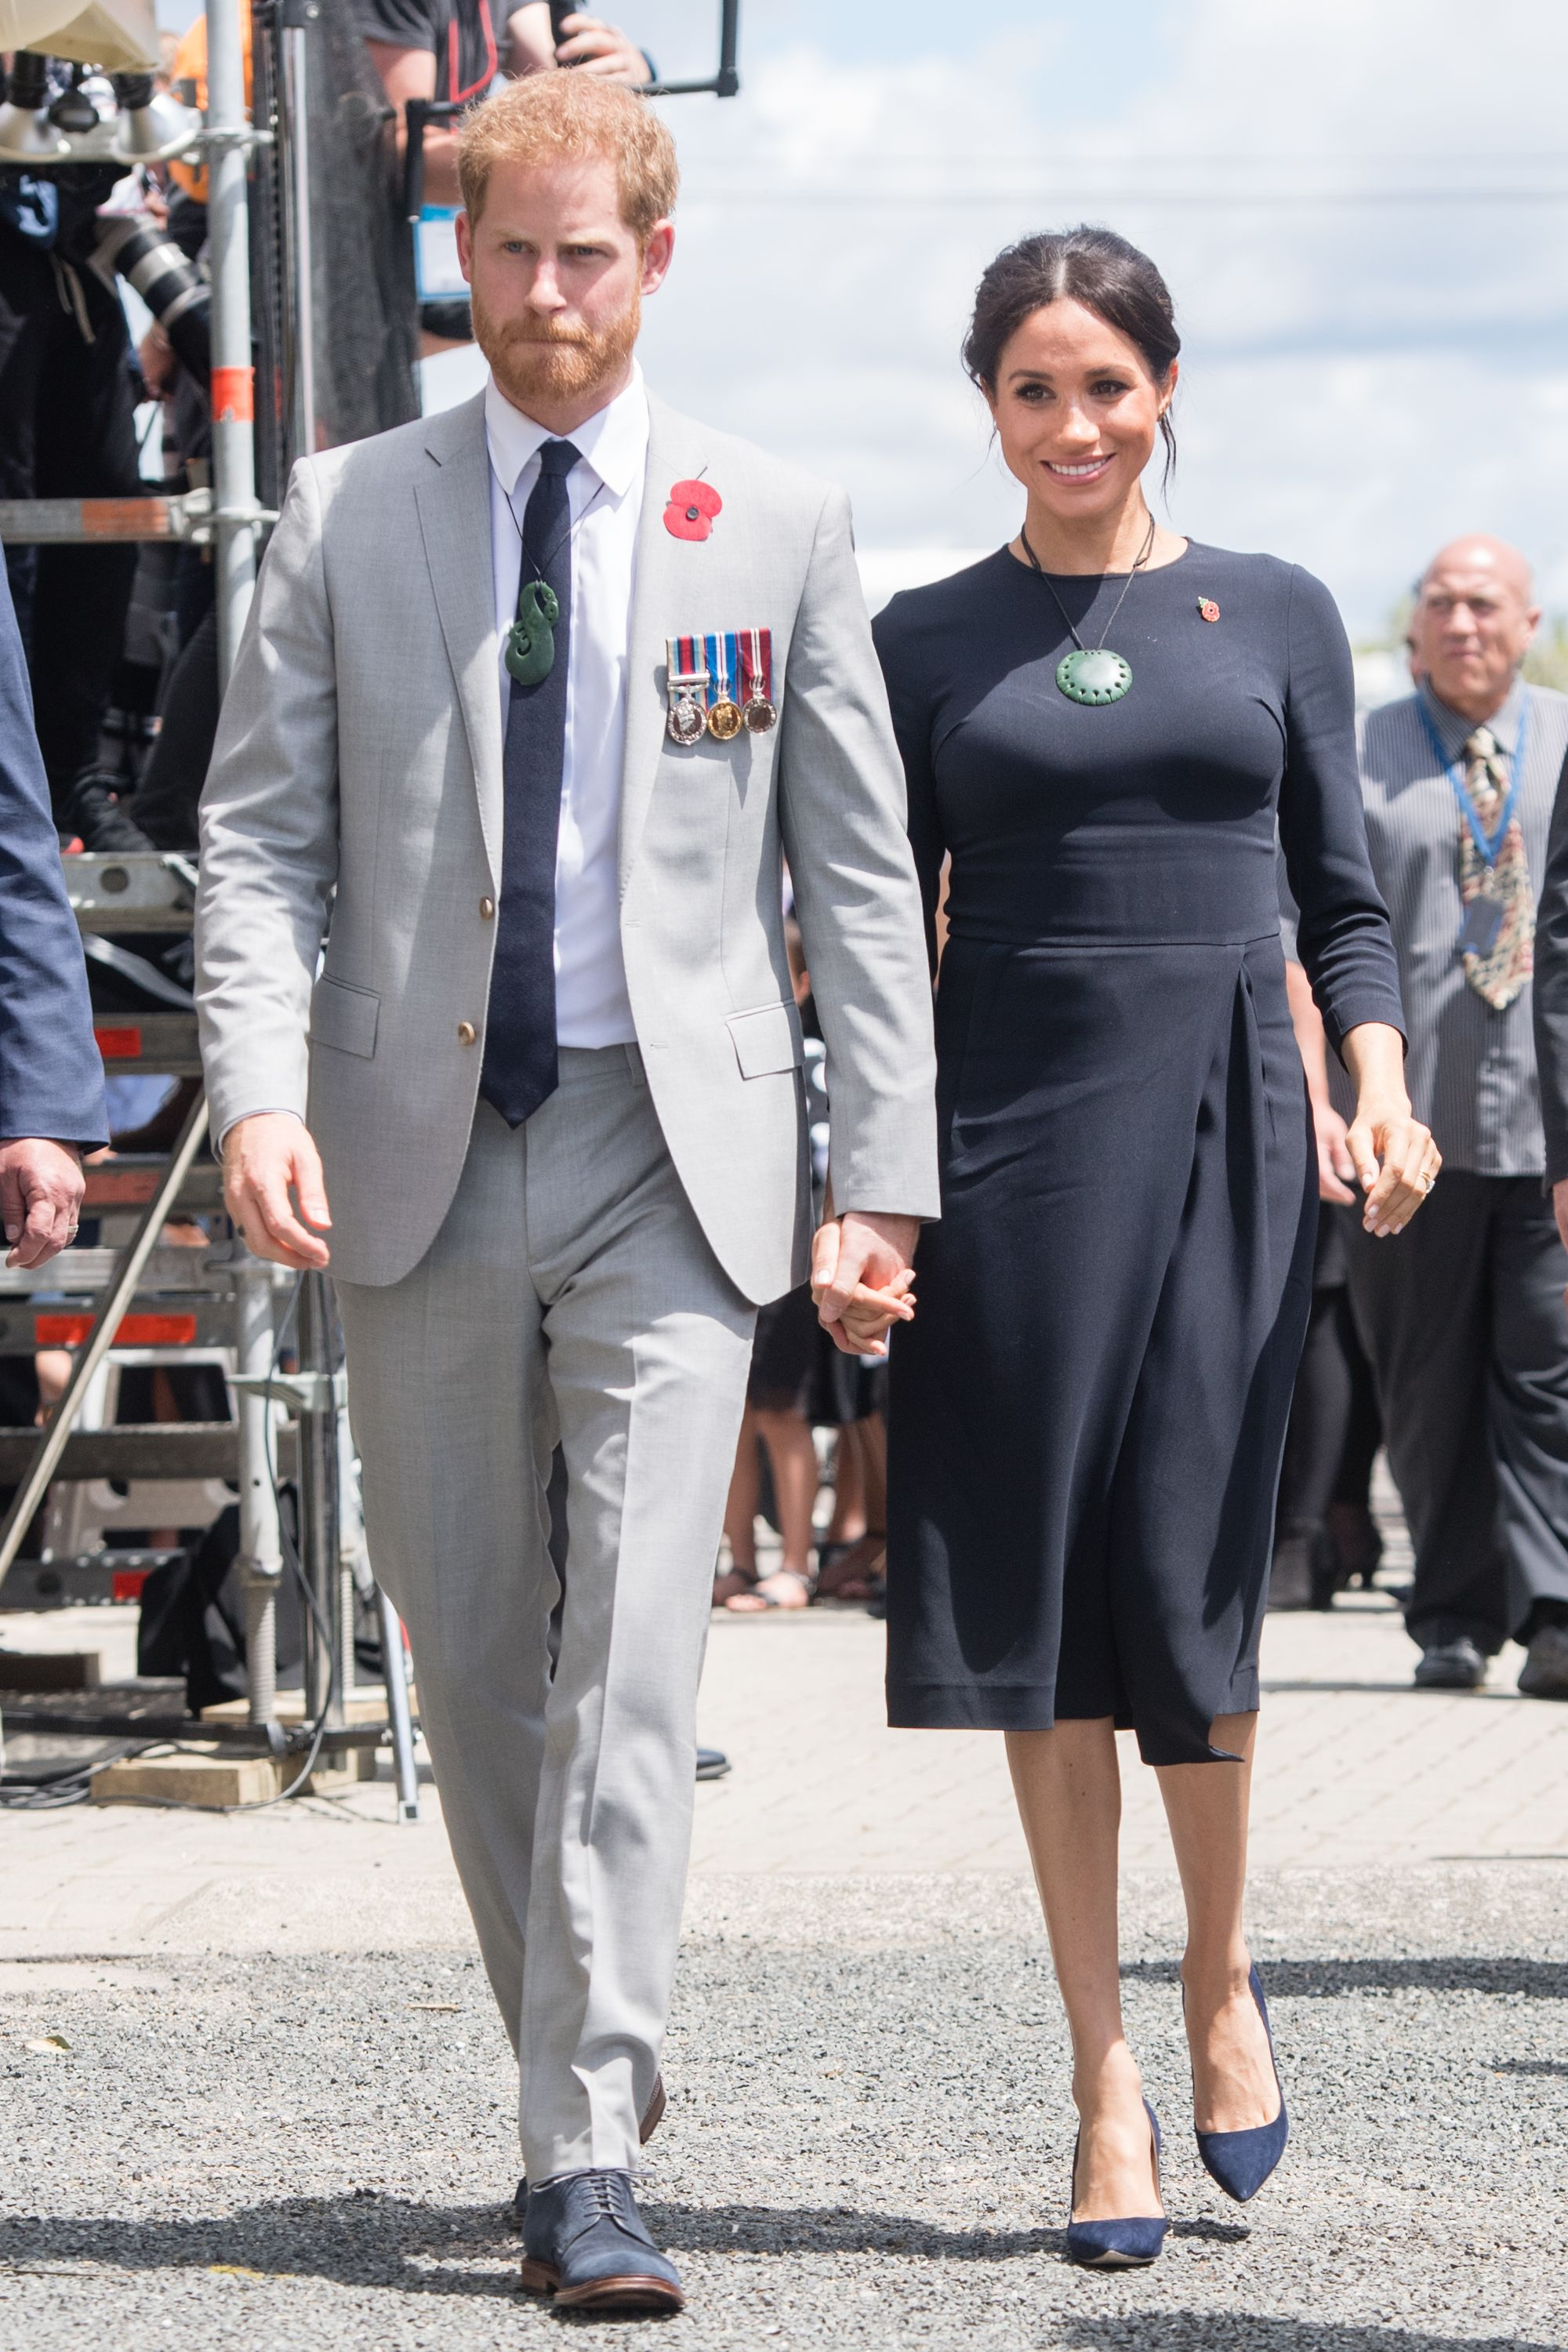 Prince Harry and Meghan Markle also met on a blind date.